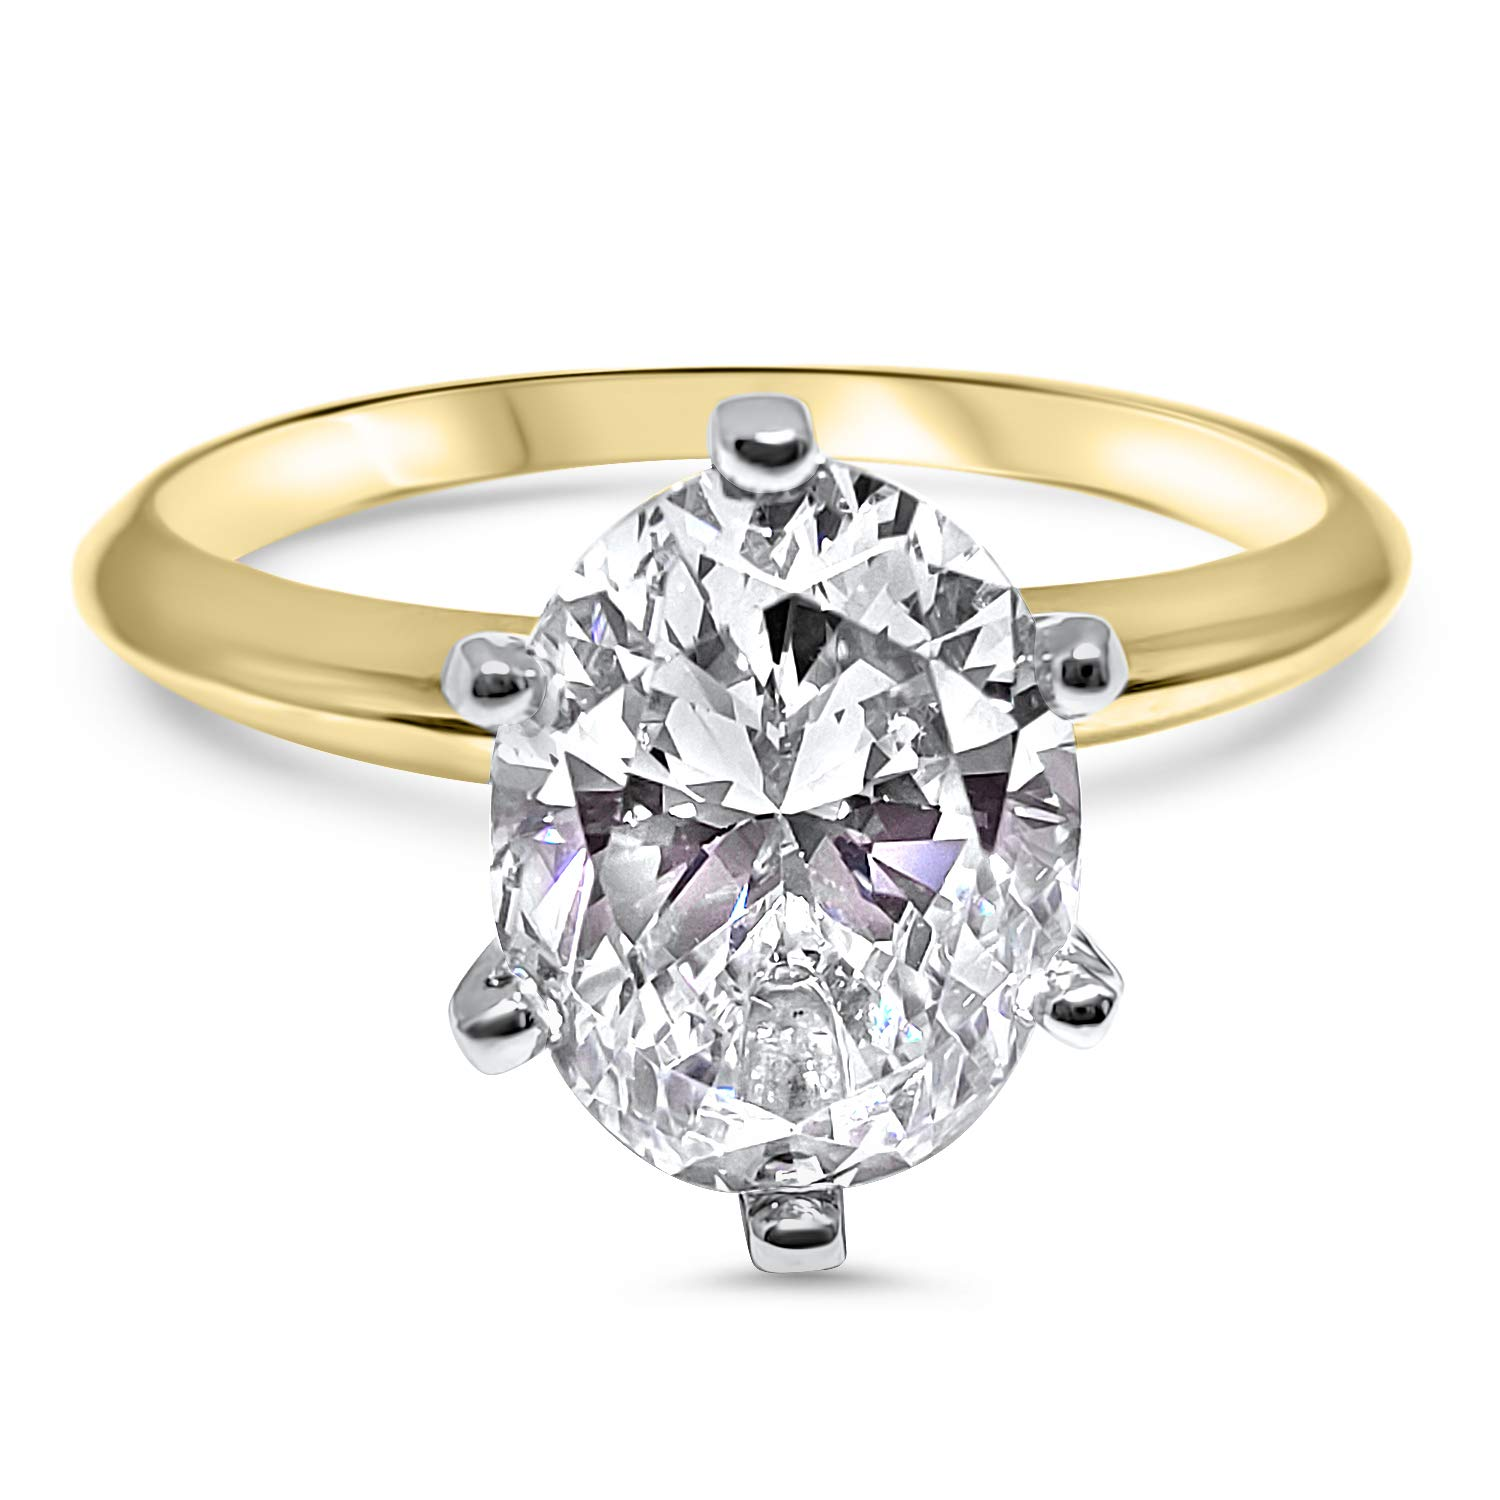 Eternal Jewelry Oval CZ Cubic Zirconia Engagement Ring 6 Prong 1.5 Carat 14K Yellow Gold (5.0)